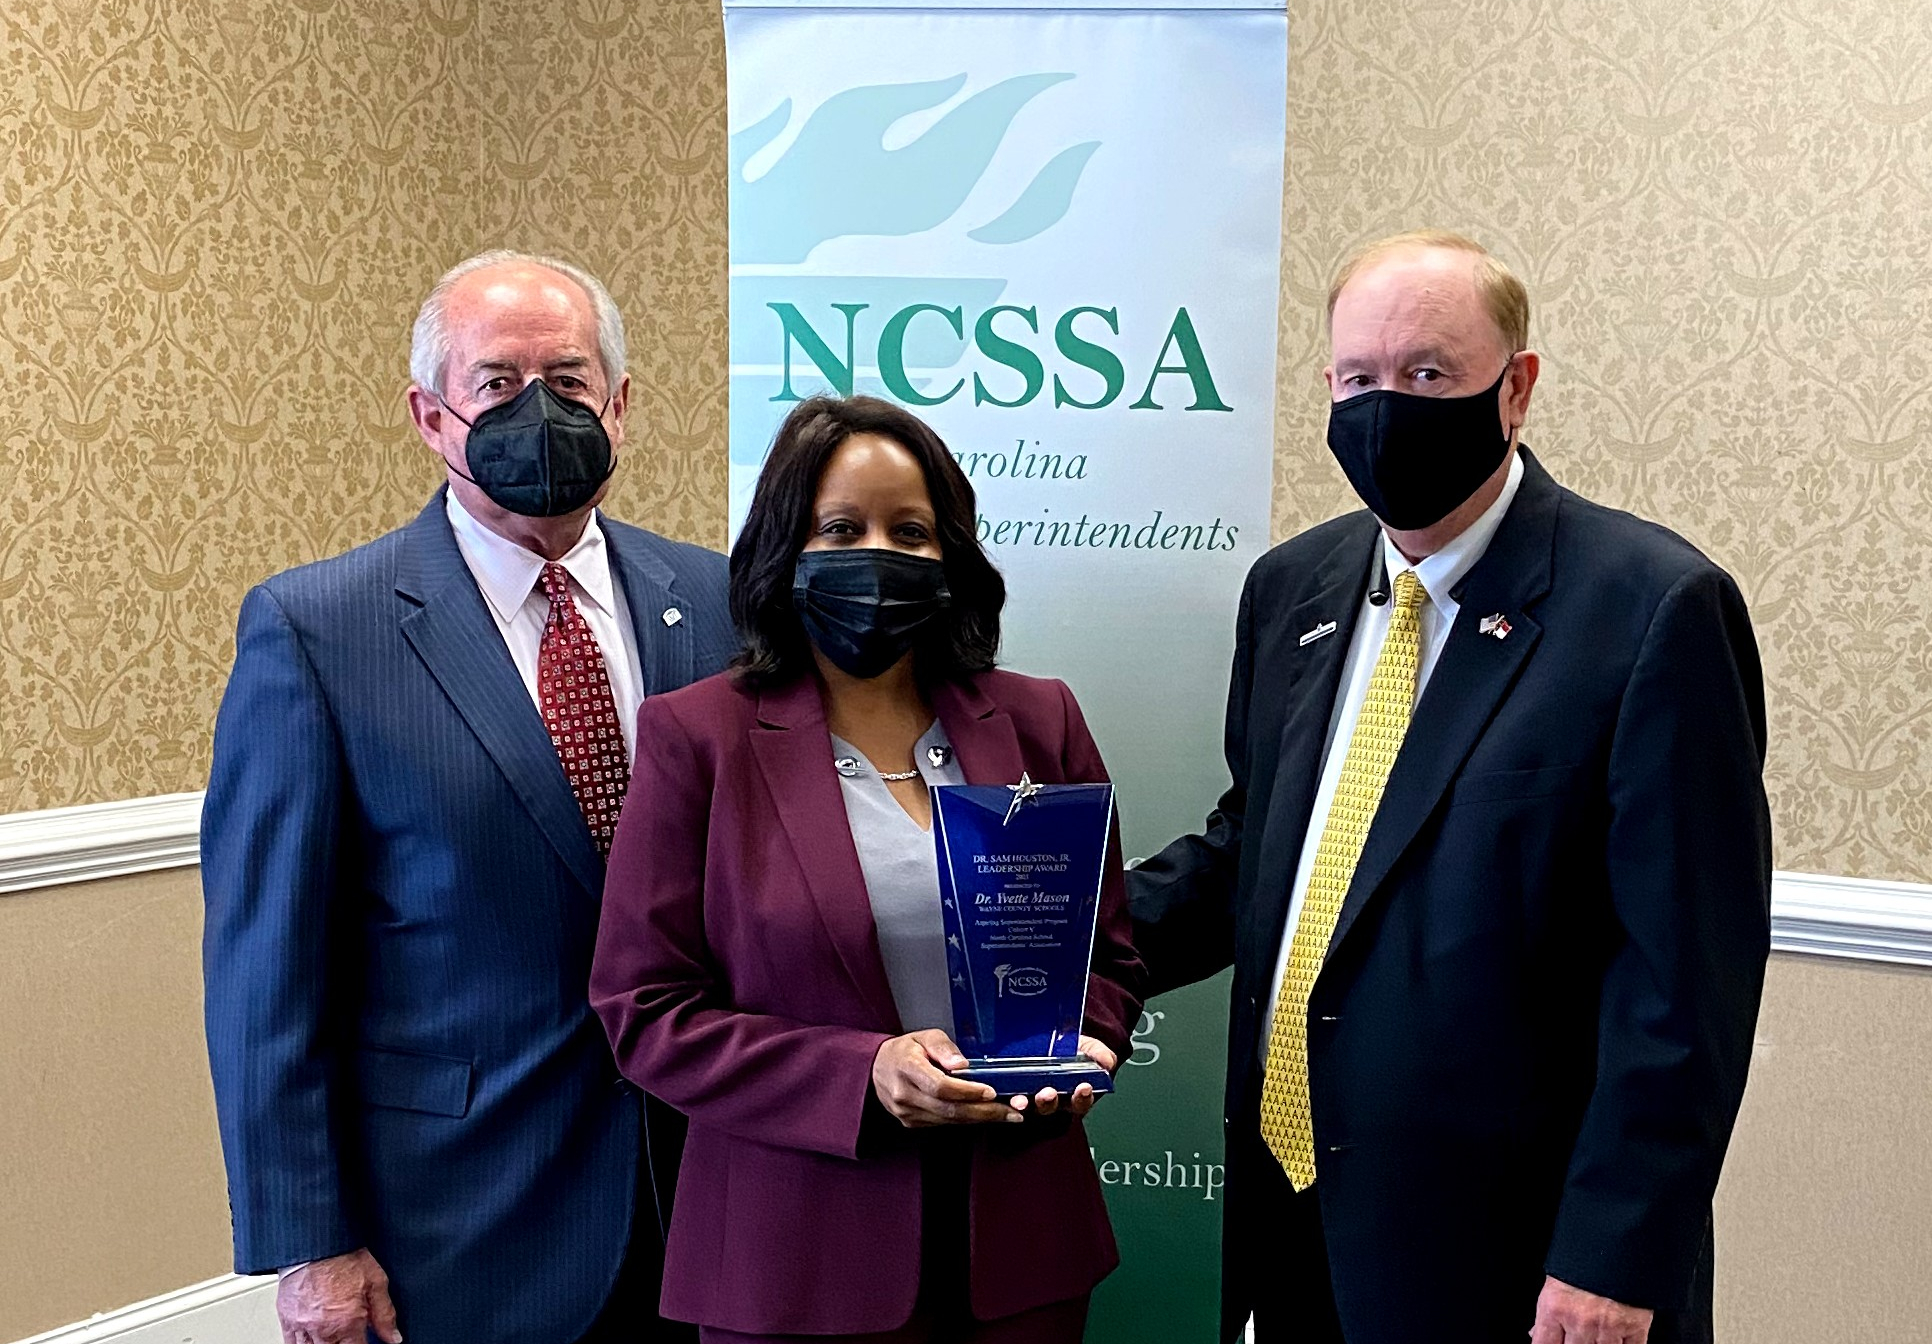 WCPS's Dr. Smith Selected For Leadership Award